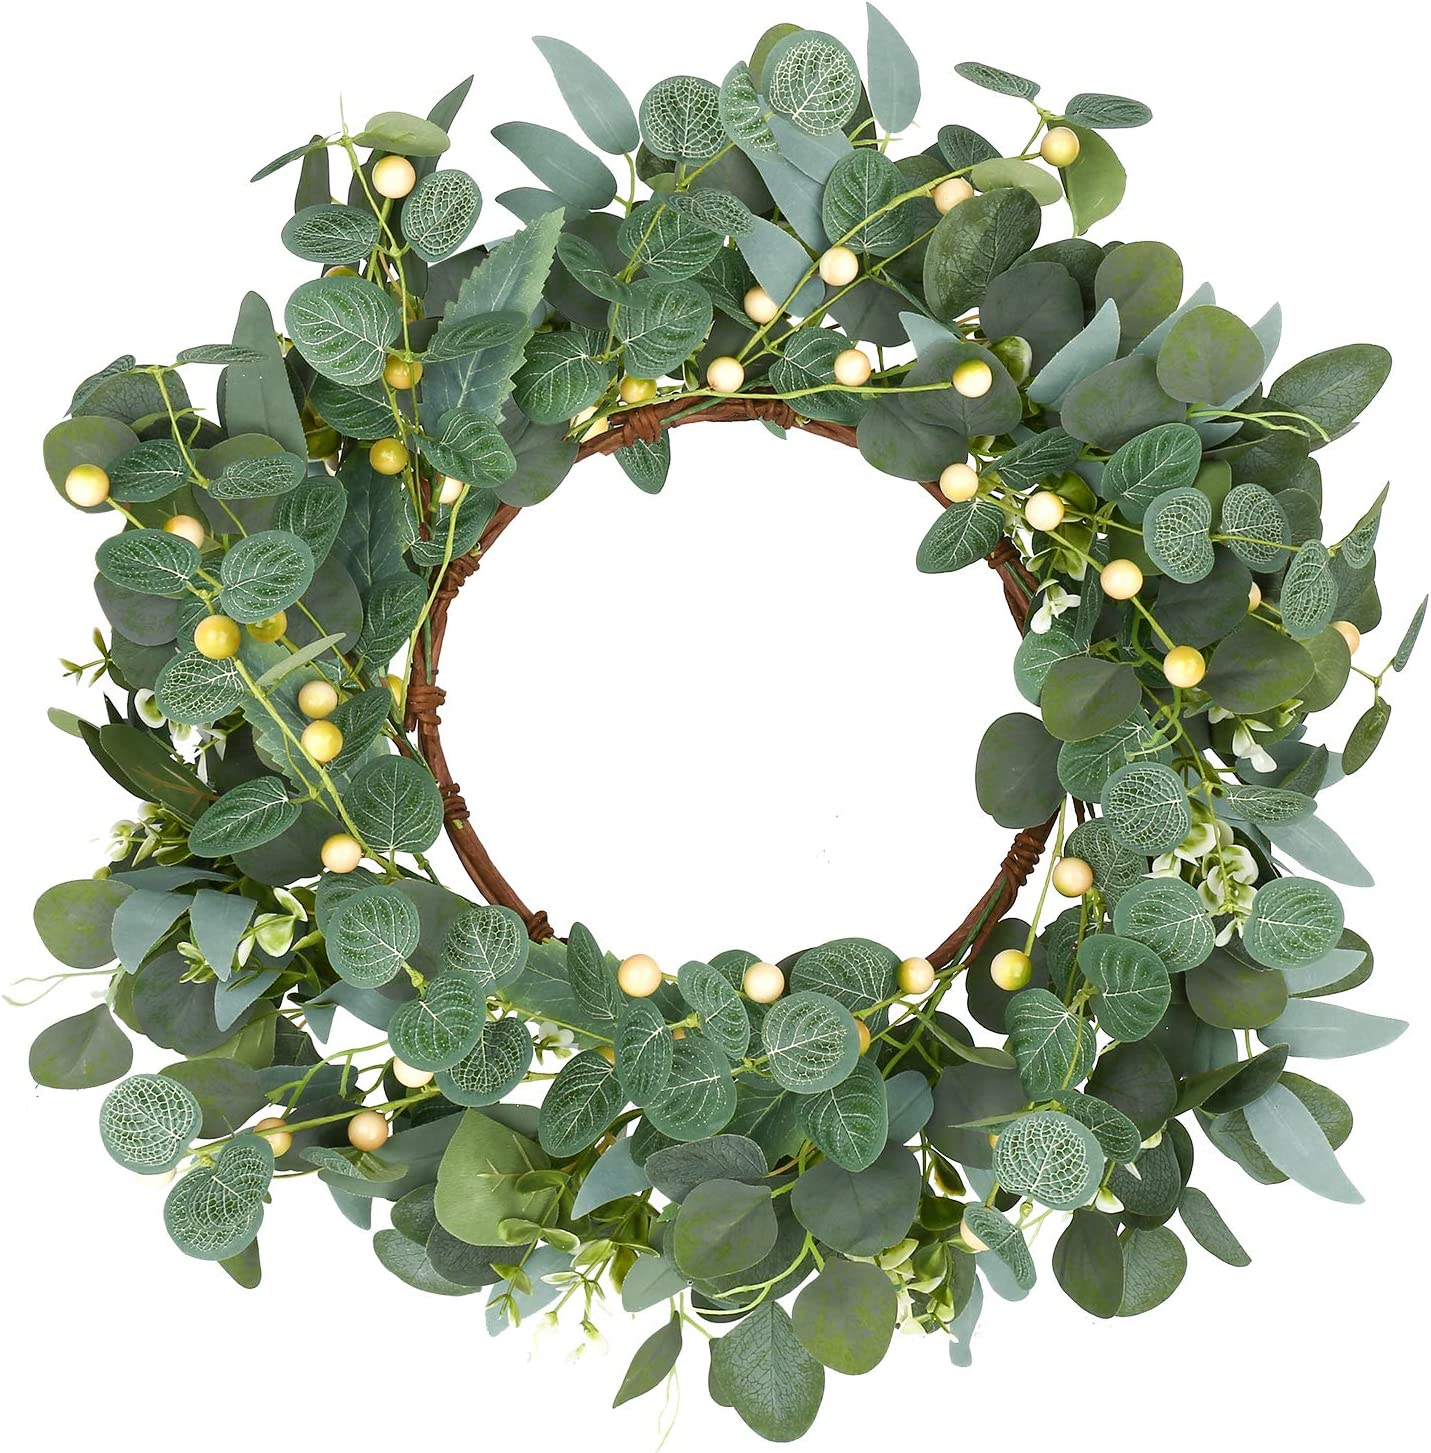 Eucalyptus Wreath,Artificial Green Eucalyptus Leaves Wreath With Light Green Berries, Spring and Summer Greenery Wreath for Front Door Wall Window Decor,Suitable for All Seasons and Festivals-20inches